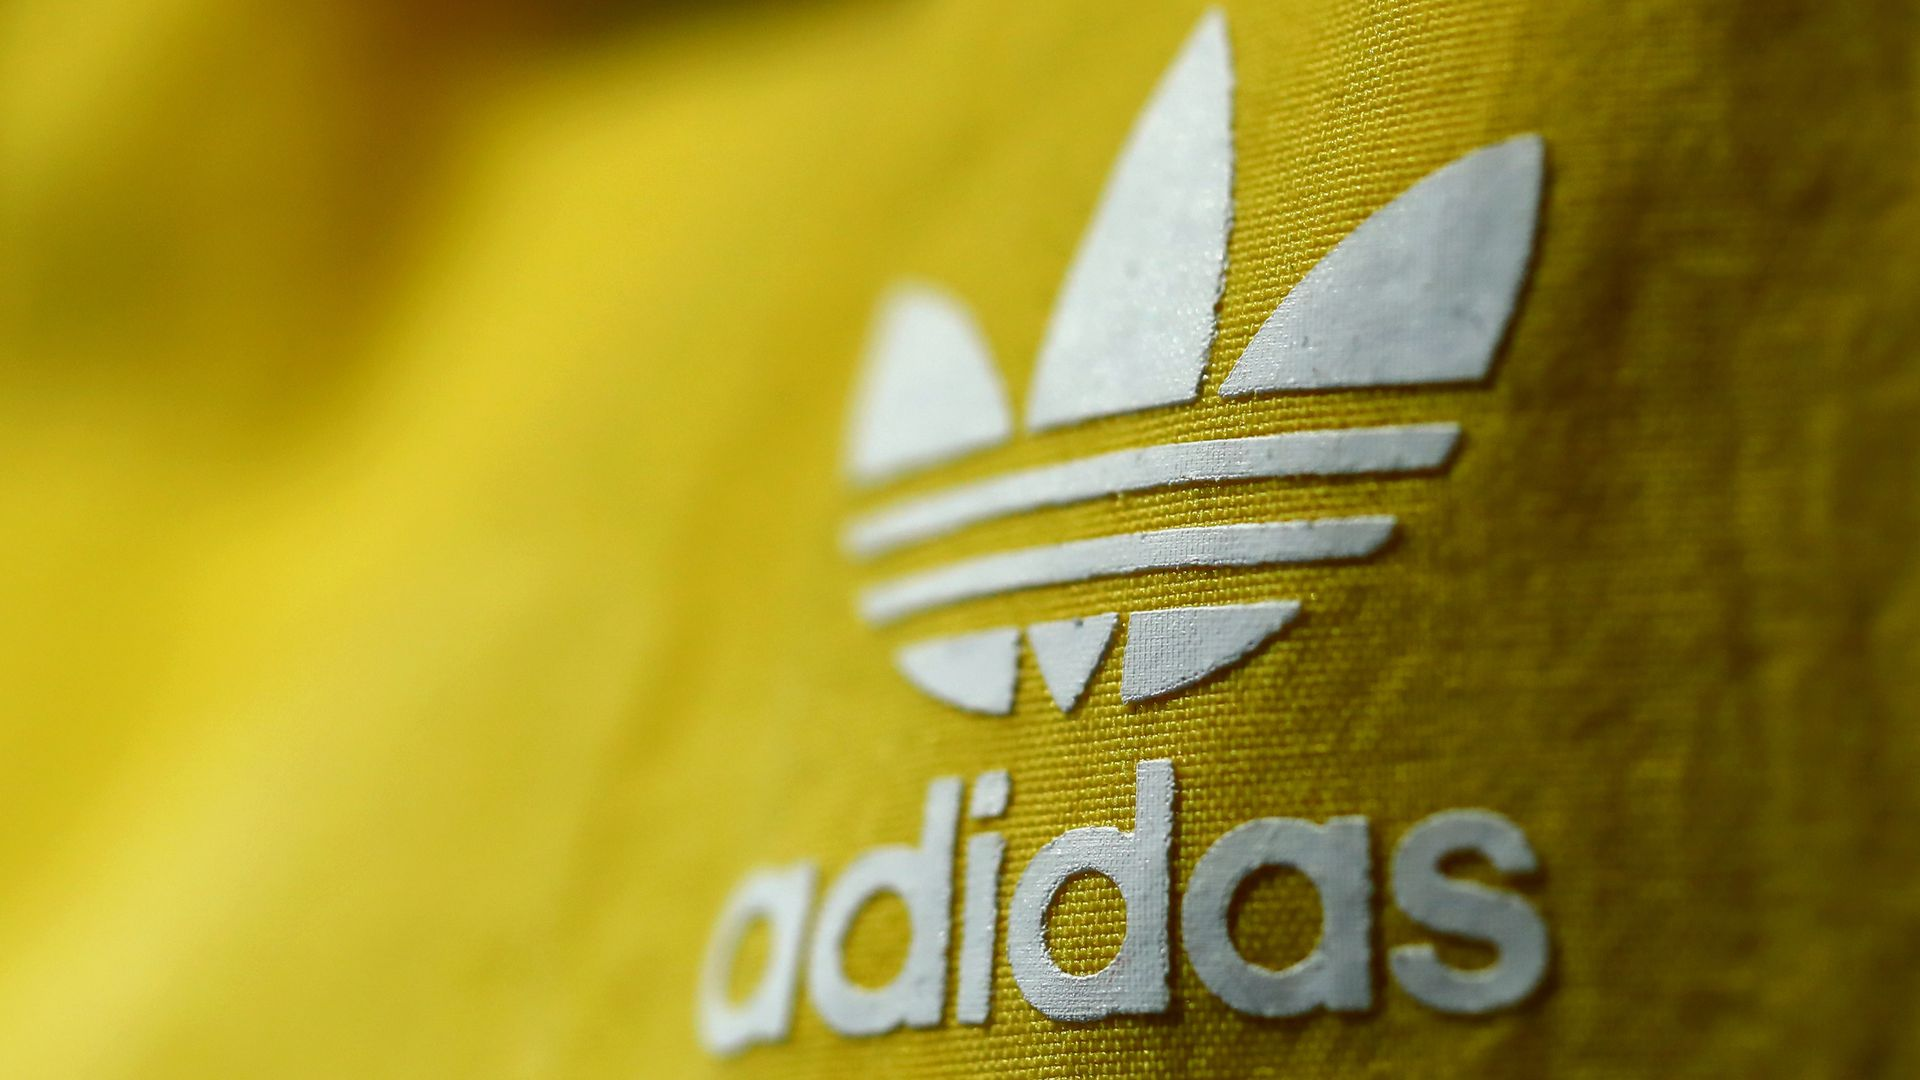 Adidas logo in white on yellow cloth.